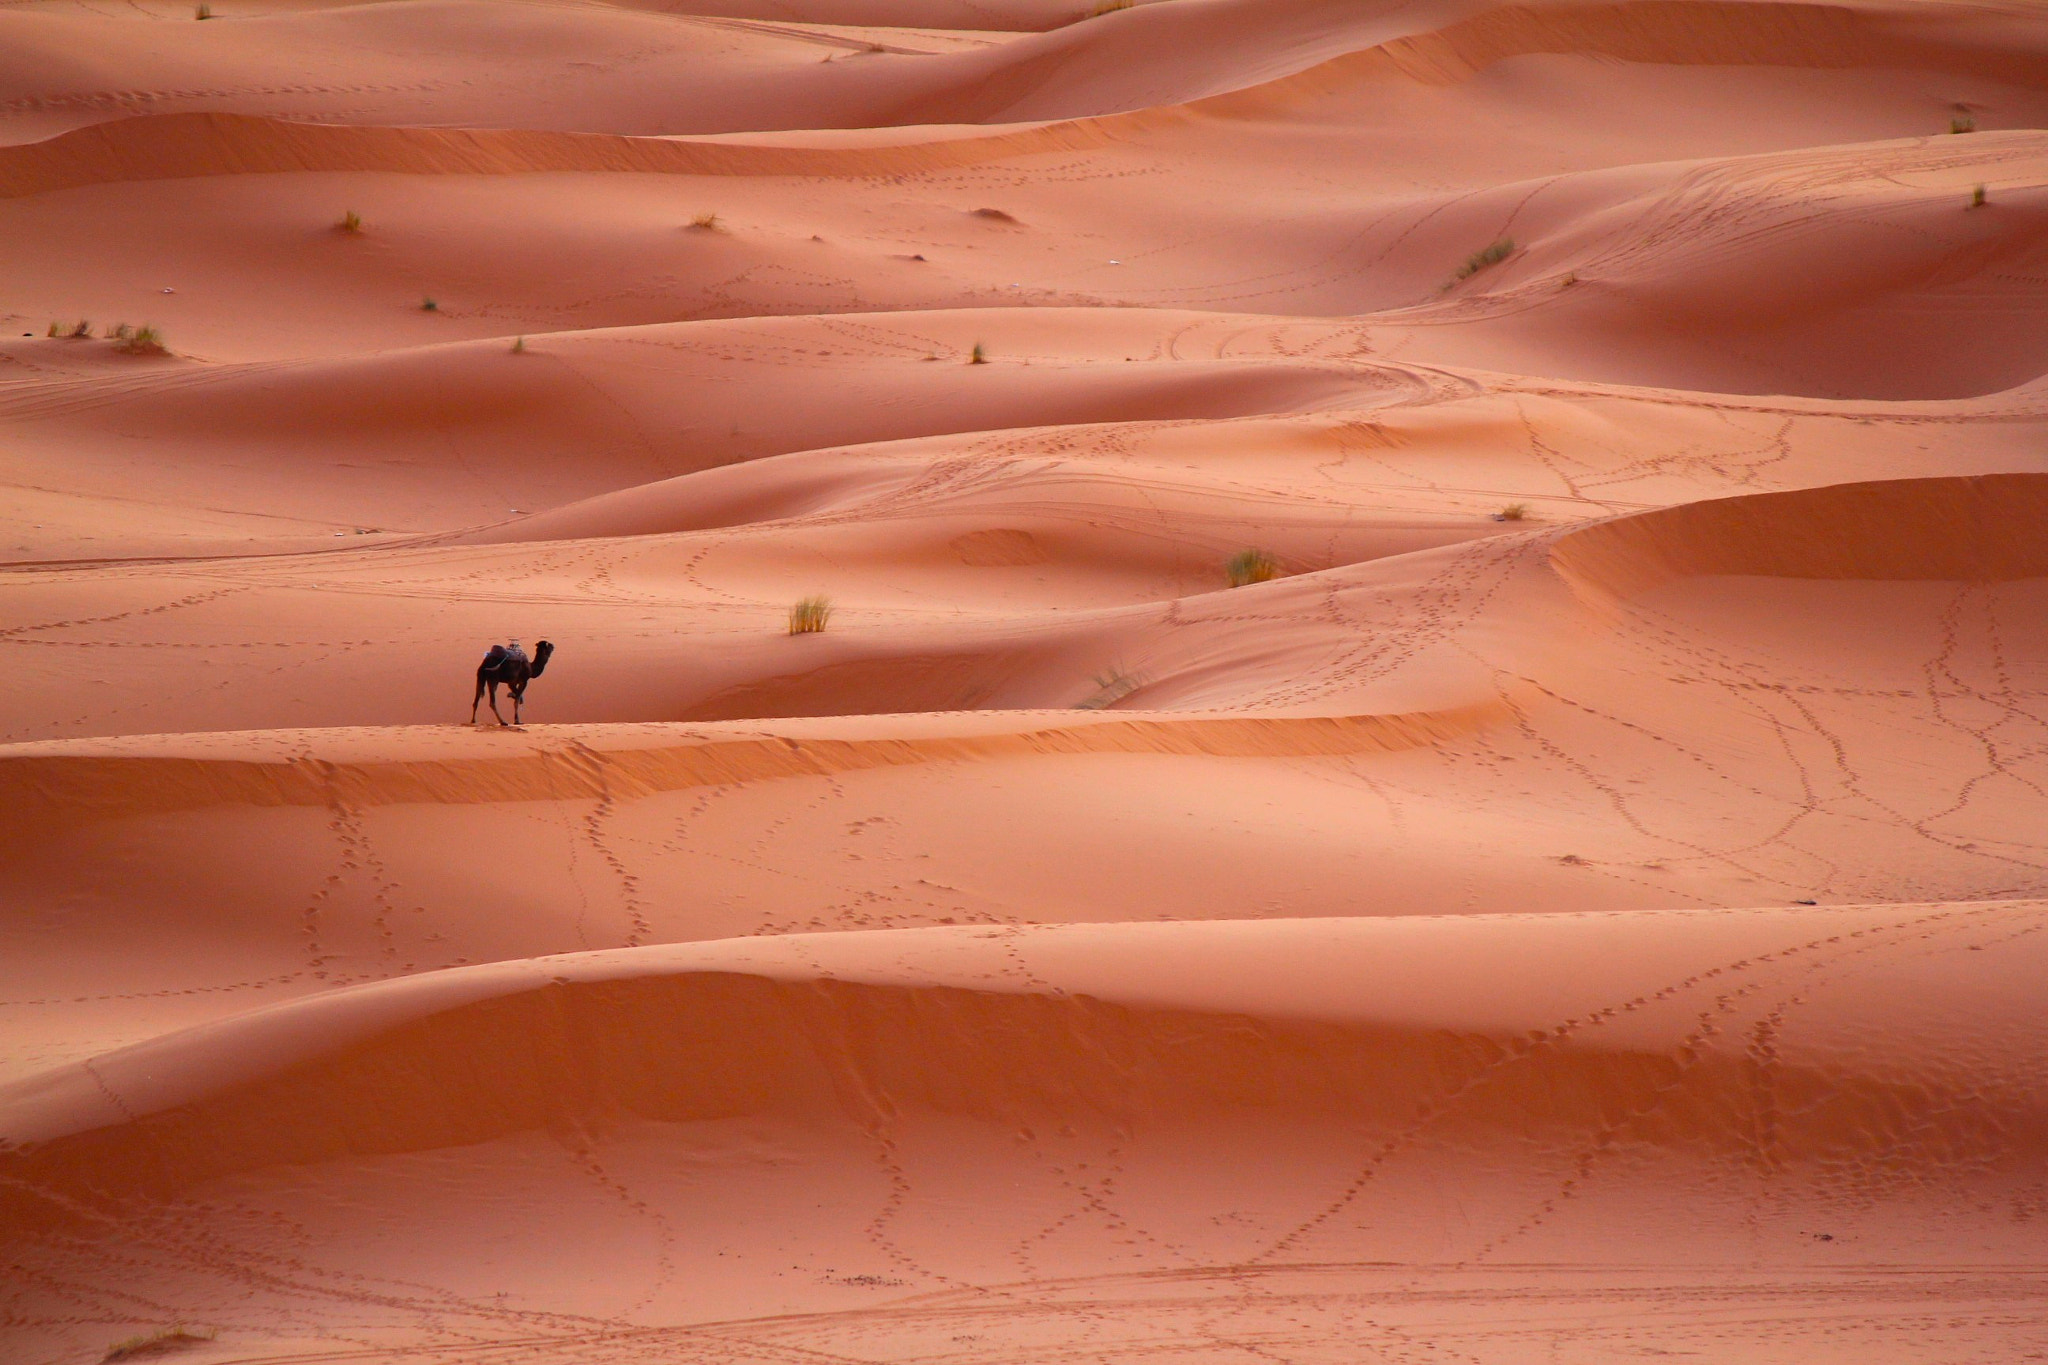 Photograph lonely camel by Elisabeth Simard on 500px